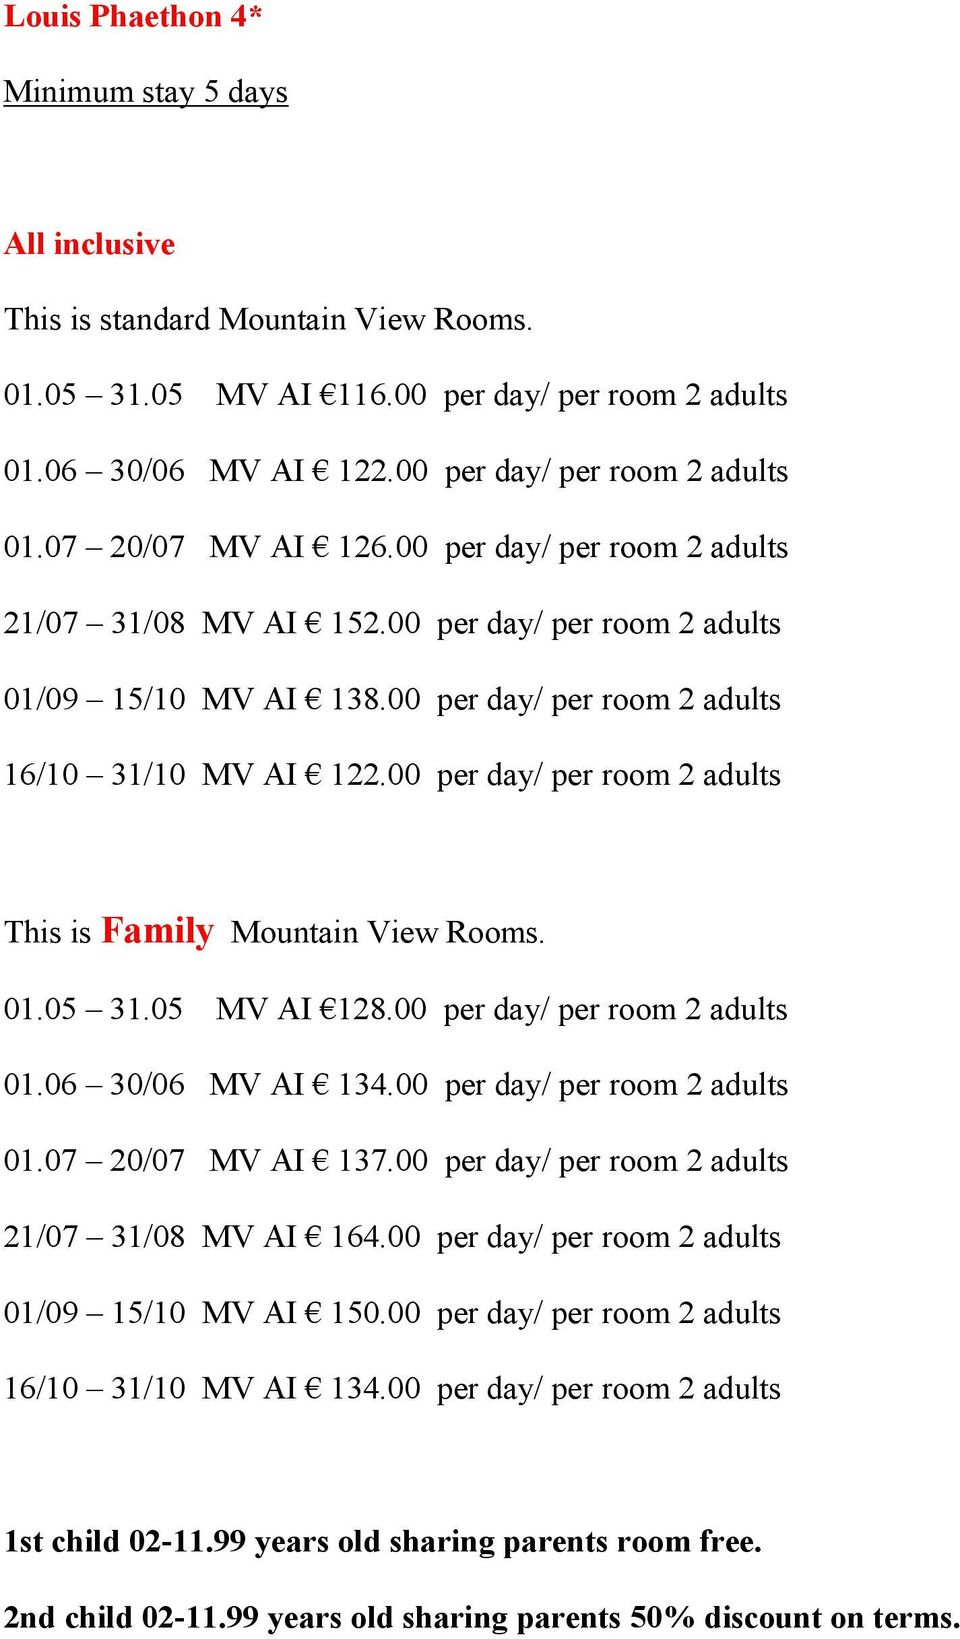 00 per day/ per room 2 adults This is Family Mountain View Rooms. 01.05 31.05 MV AI 128.00 per day/ per room 2 adults 01.06 30/06 MV AI 134.00 per day/ per room 2 adults 01.07 20/07 MV AI 137.